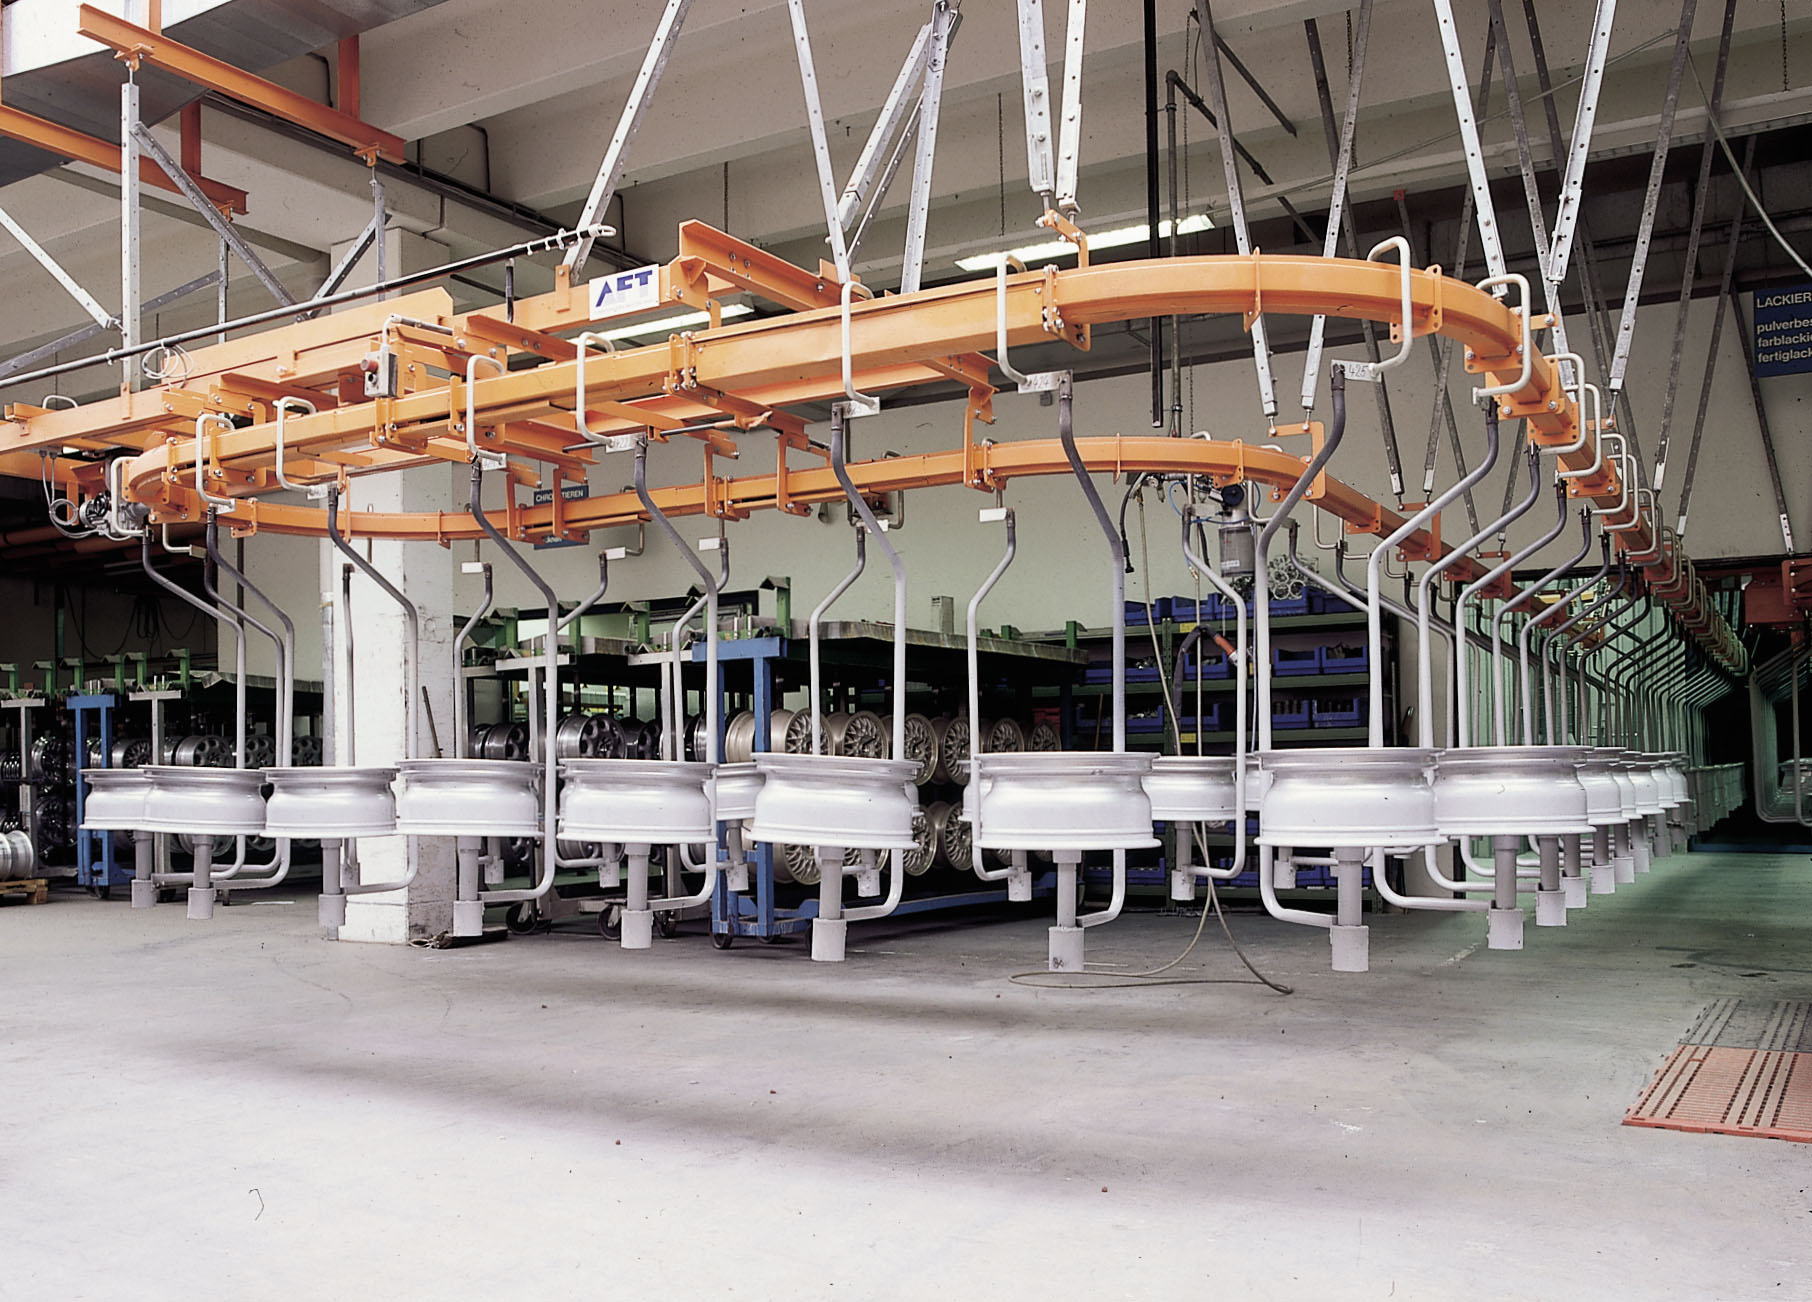 Circular conveyor system for transport of wheel rims